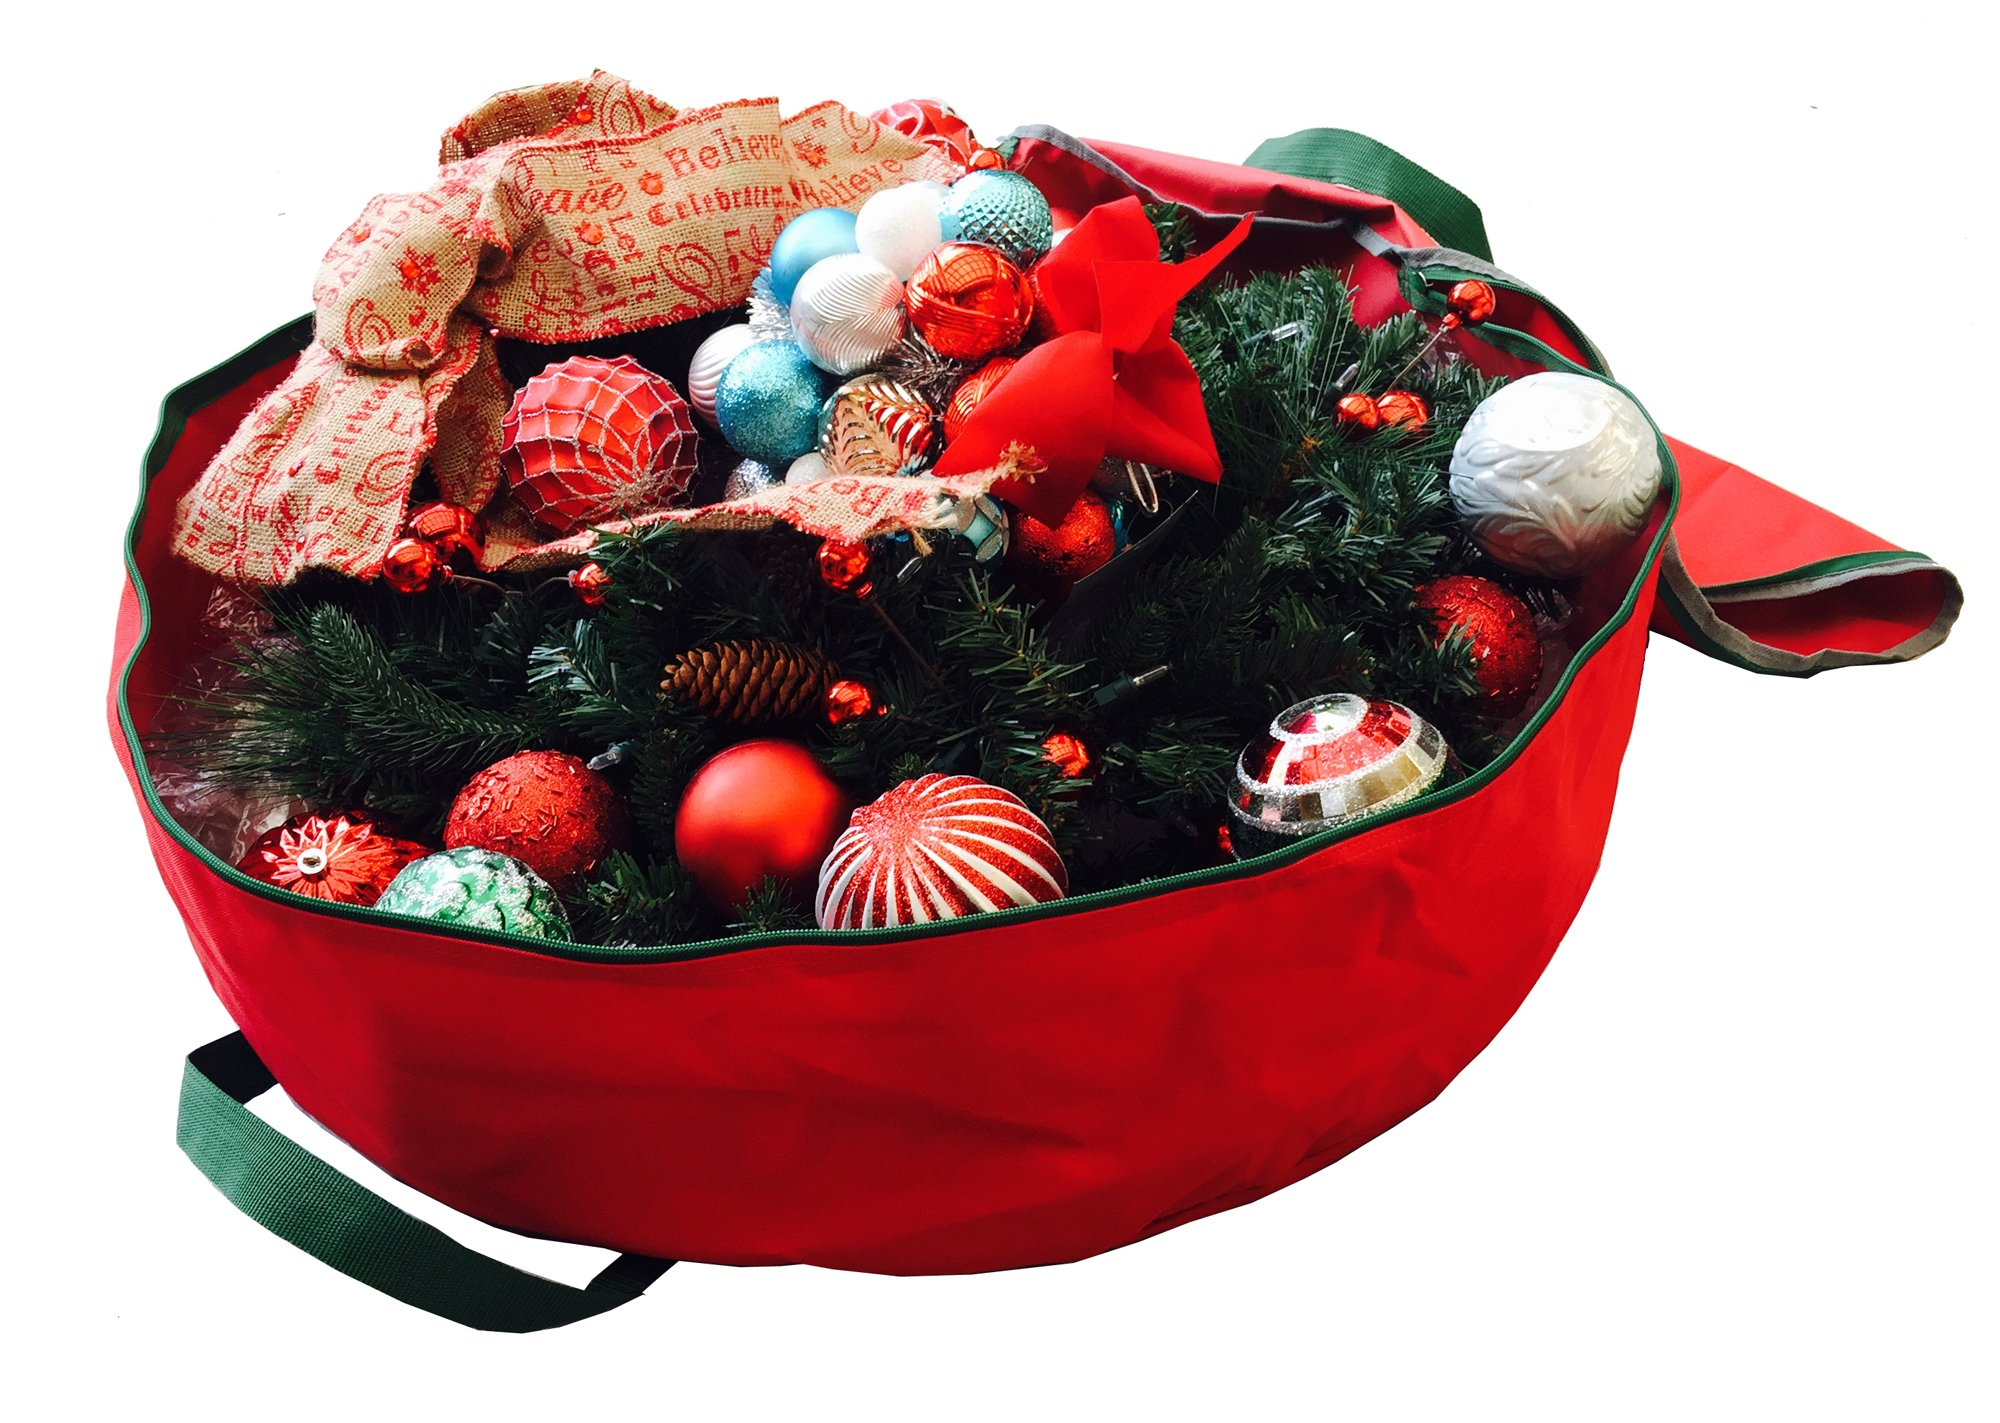 Wreath Storage Bag Heavy Duty Round 30 Inch Premium Holiday Christmas Garland Bag Strong Quality Xmas Wreaths Ornaments Storage Bags Red 30''